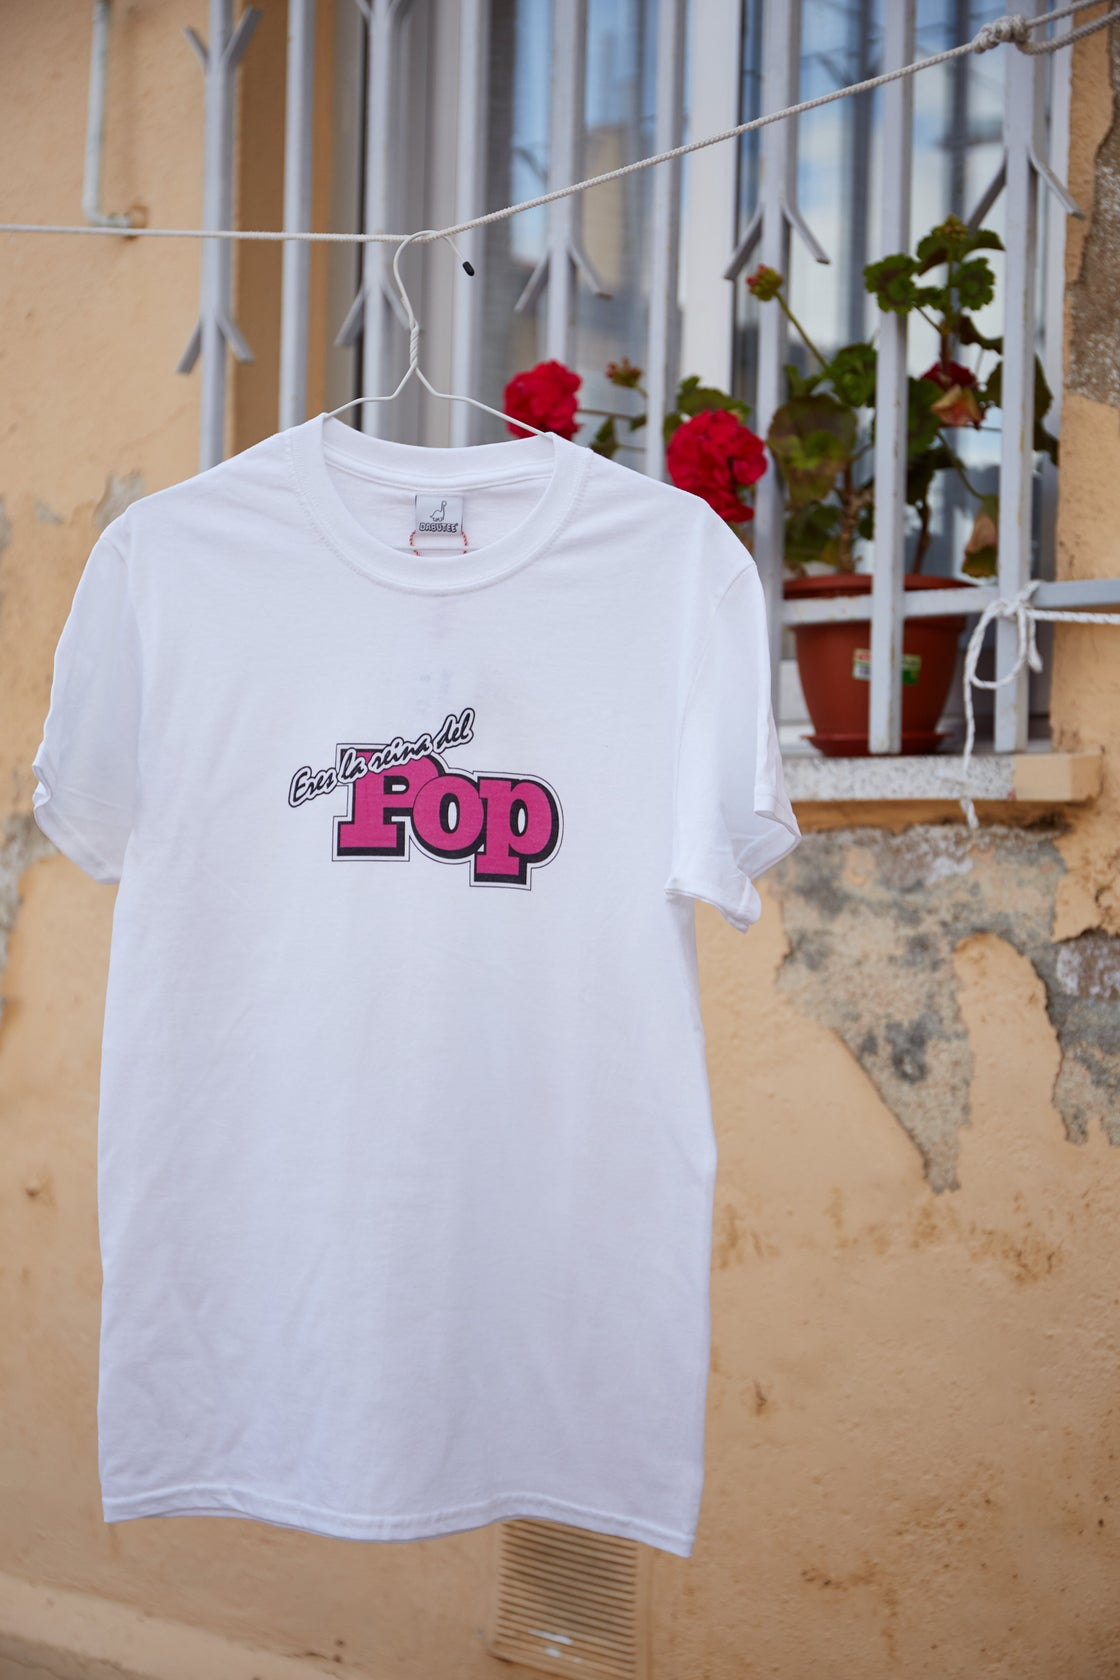 Image of Camiseta 'Eres la reina del pop'